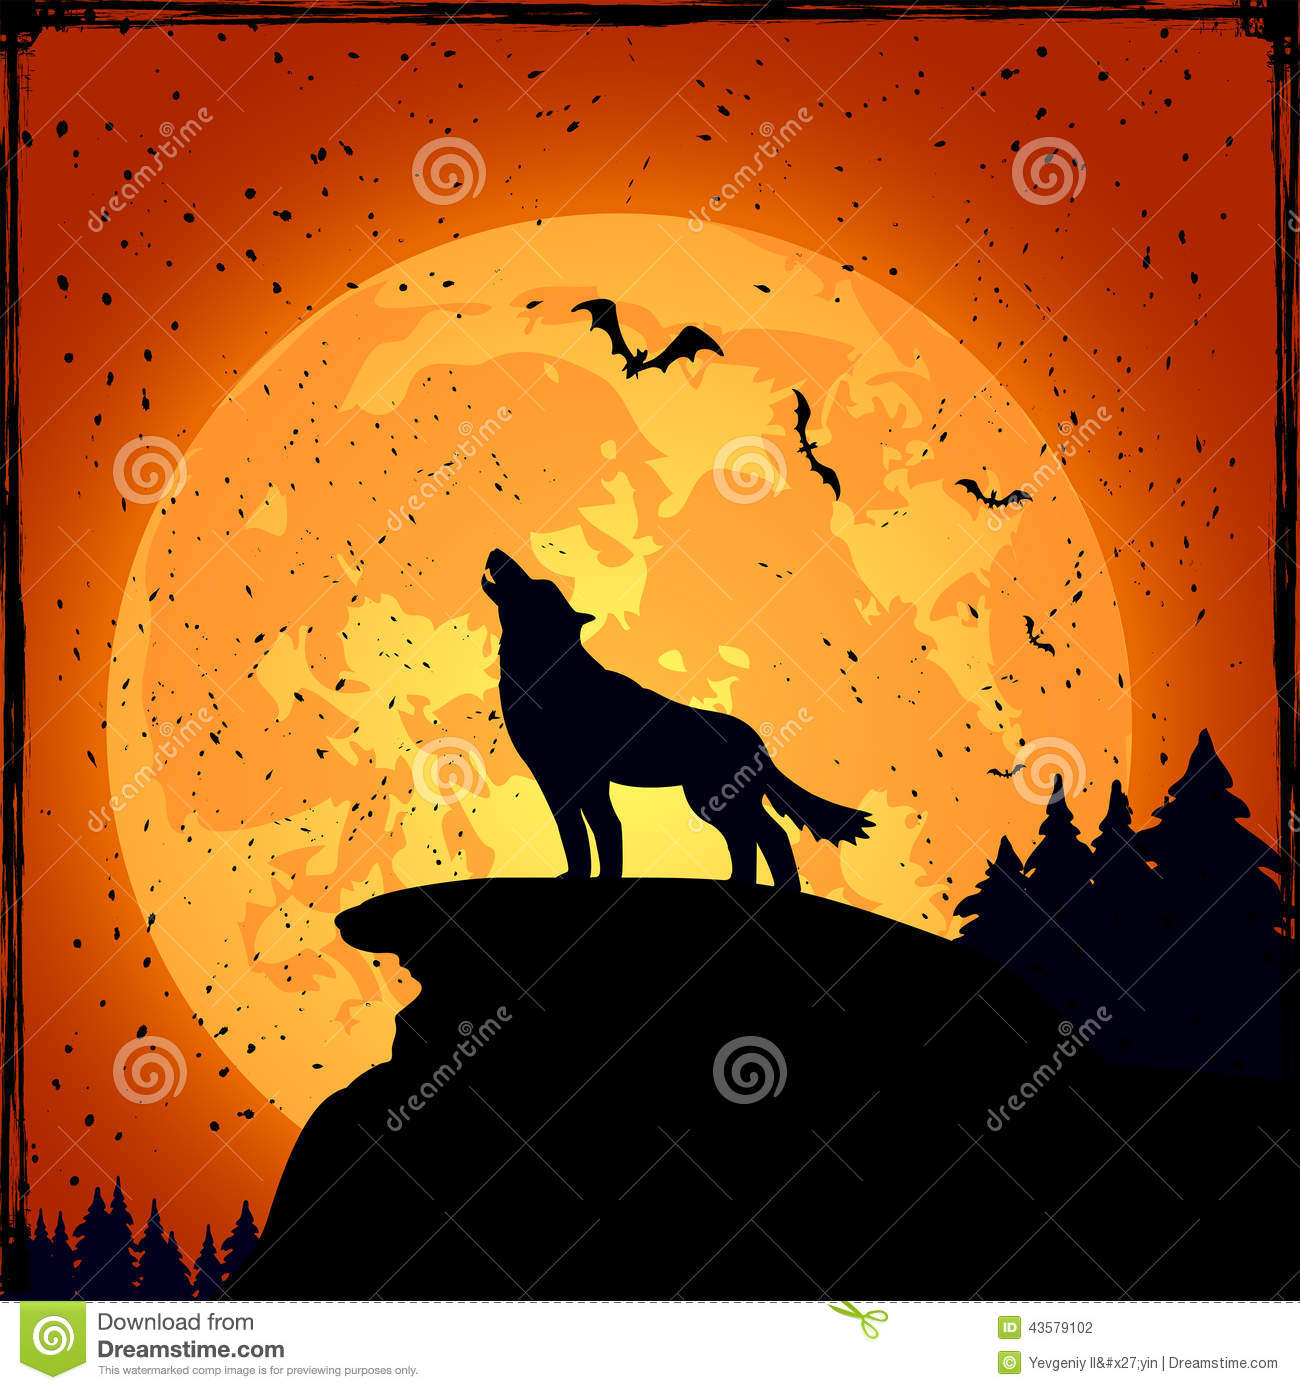 background full grunge halloween illustration moon night wolf - Wolf Halloween